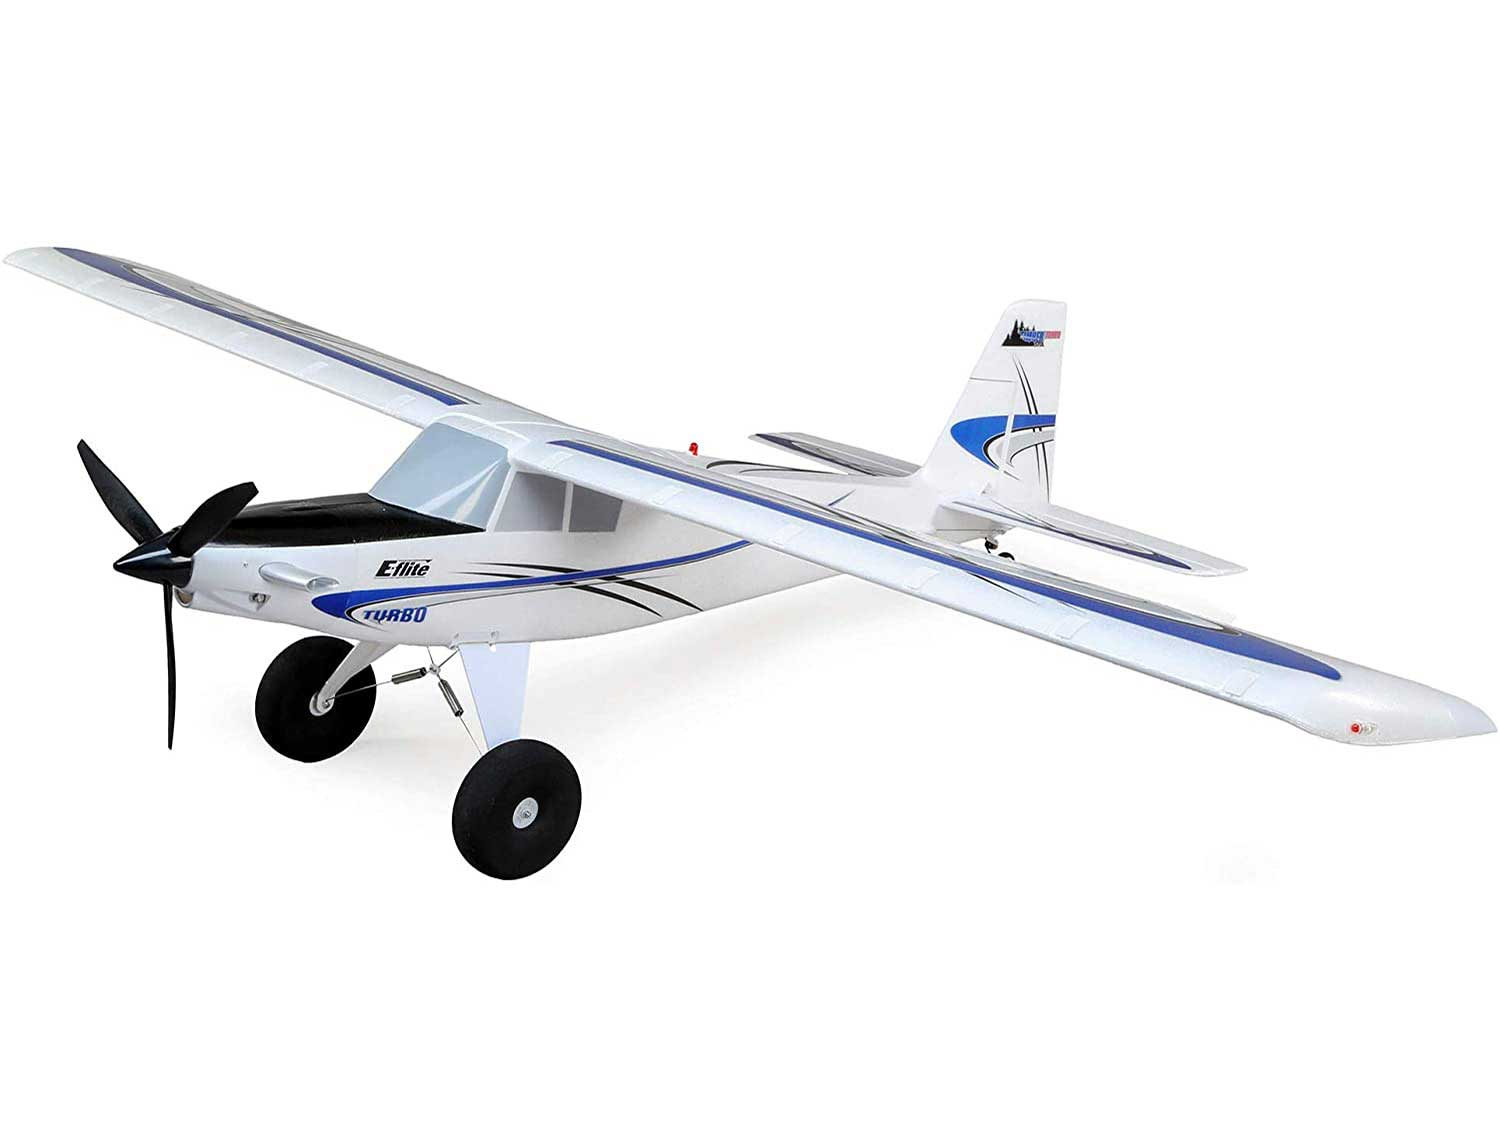 Turbo Timber 1.5M RC Airplane Pnp with Floats (Transmitter, Receiver, Battery & Charger Sold Separately), EFL15275